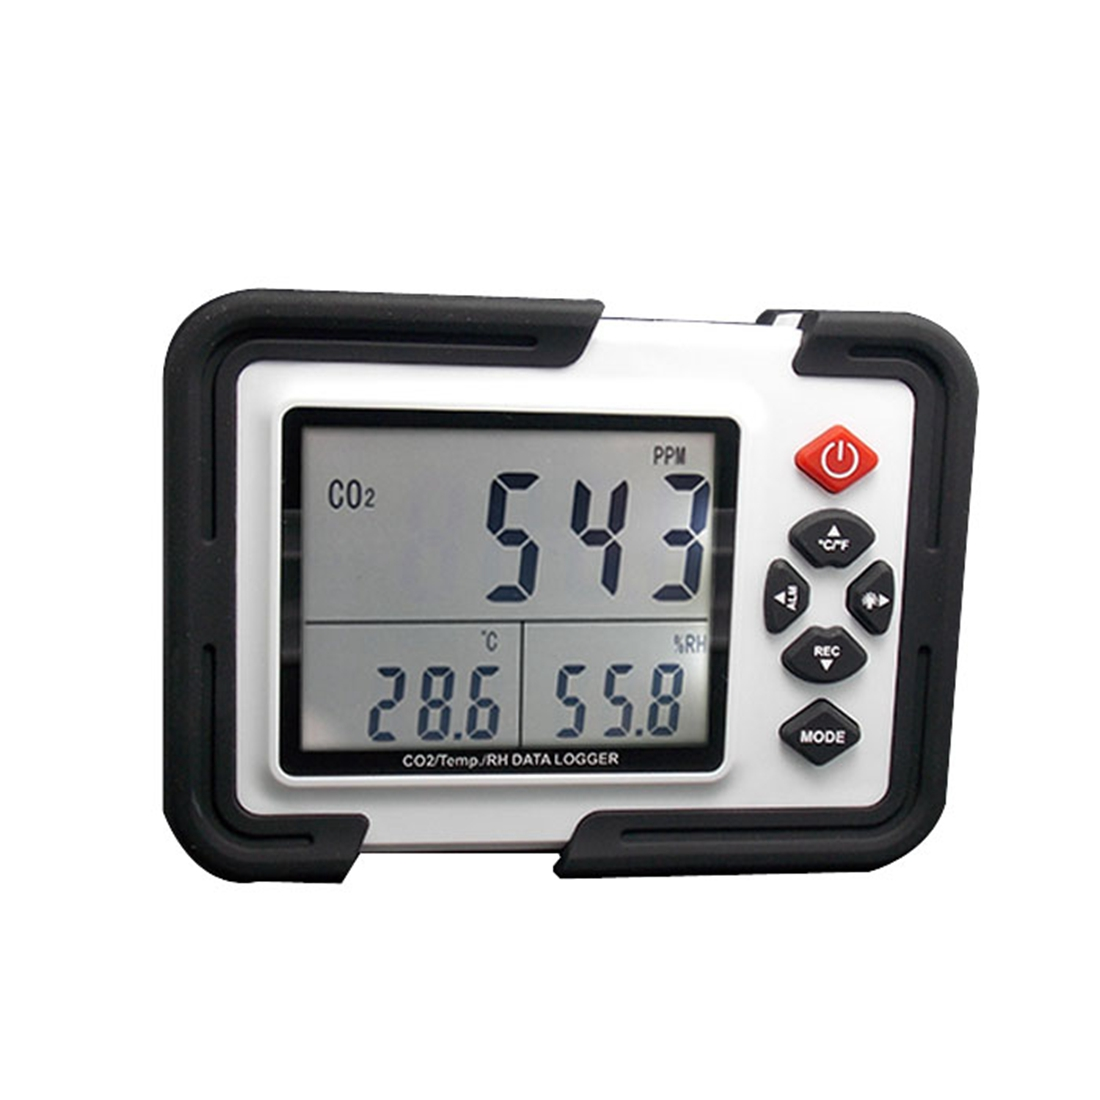 US Plug XINSITE HT 2000 Digital Carbon Dioxide Monitor CO2 Detection Analyzer Thermo Hygrometer Greenhouse Gas